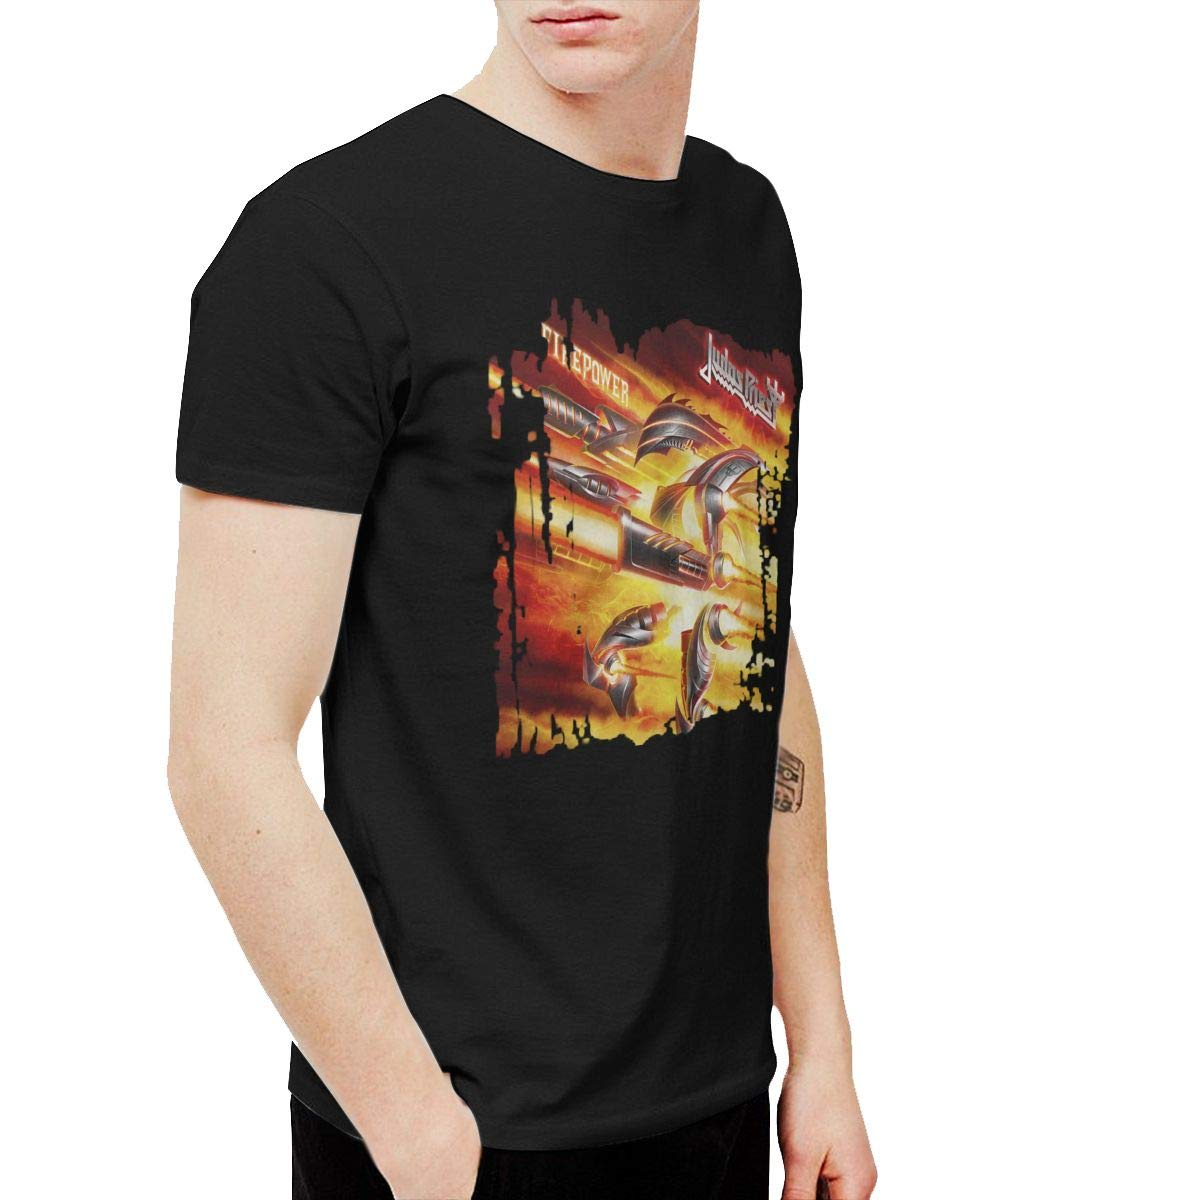 Geneva F Judas Priest Firepower Men's Short Sleeve Tees Black